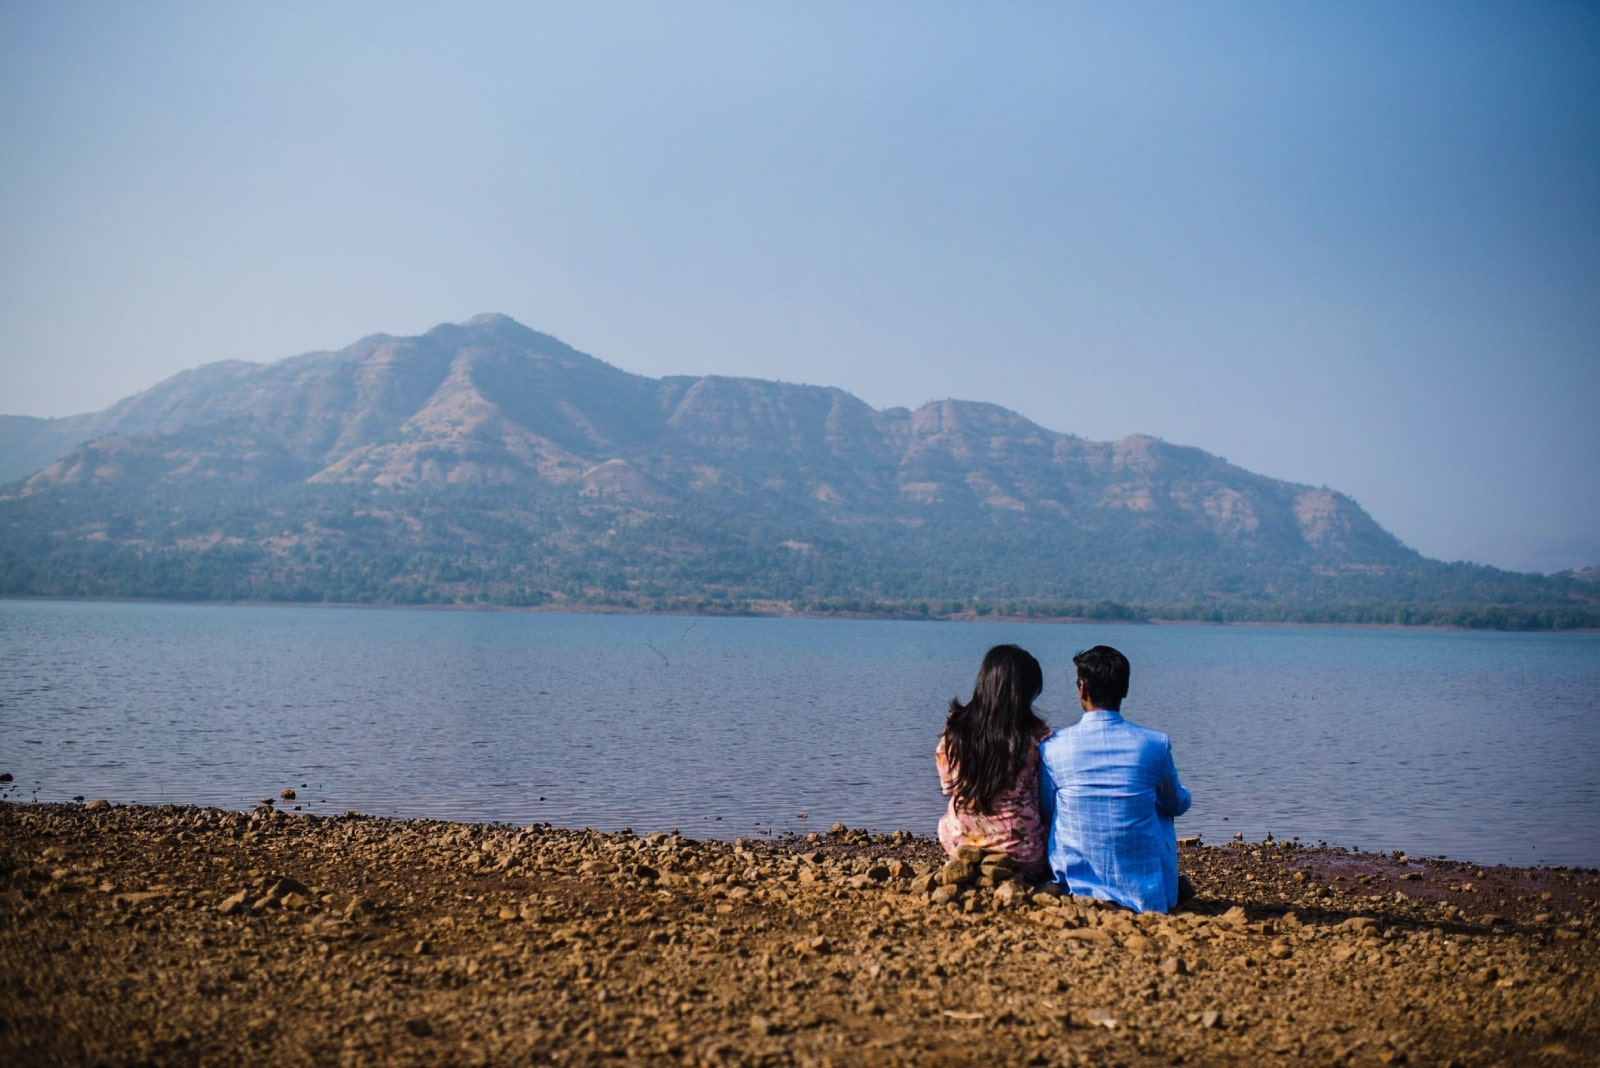 man in blue shirt and woman sitting near water